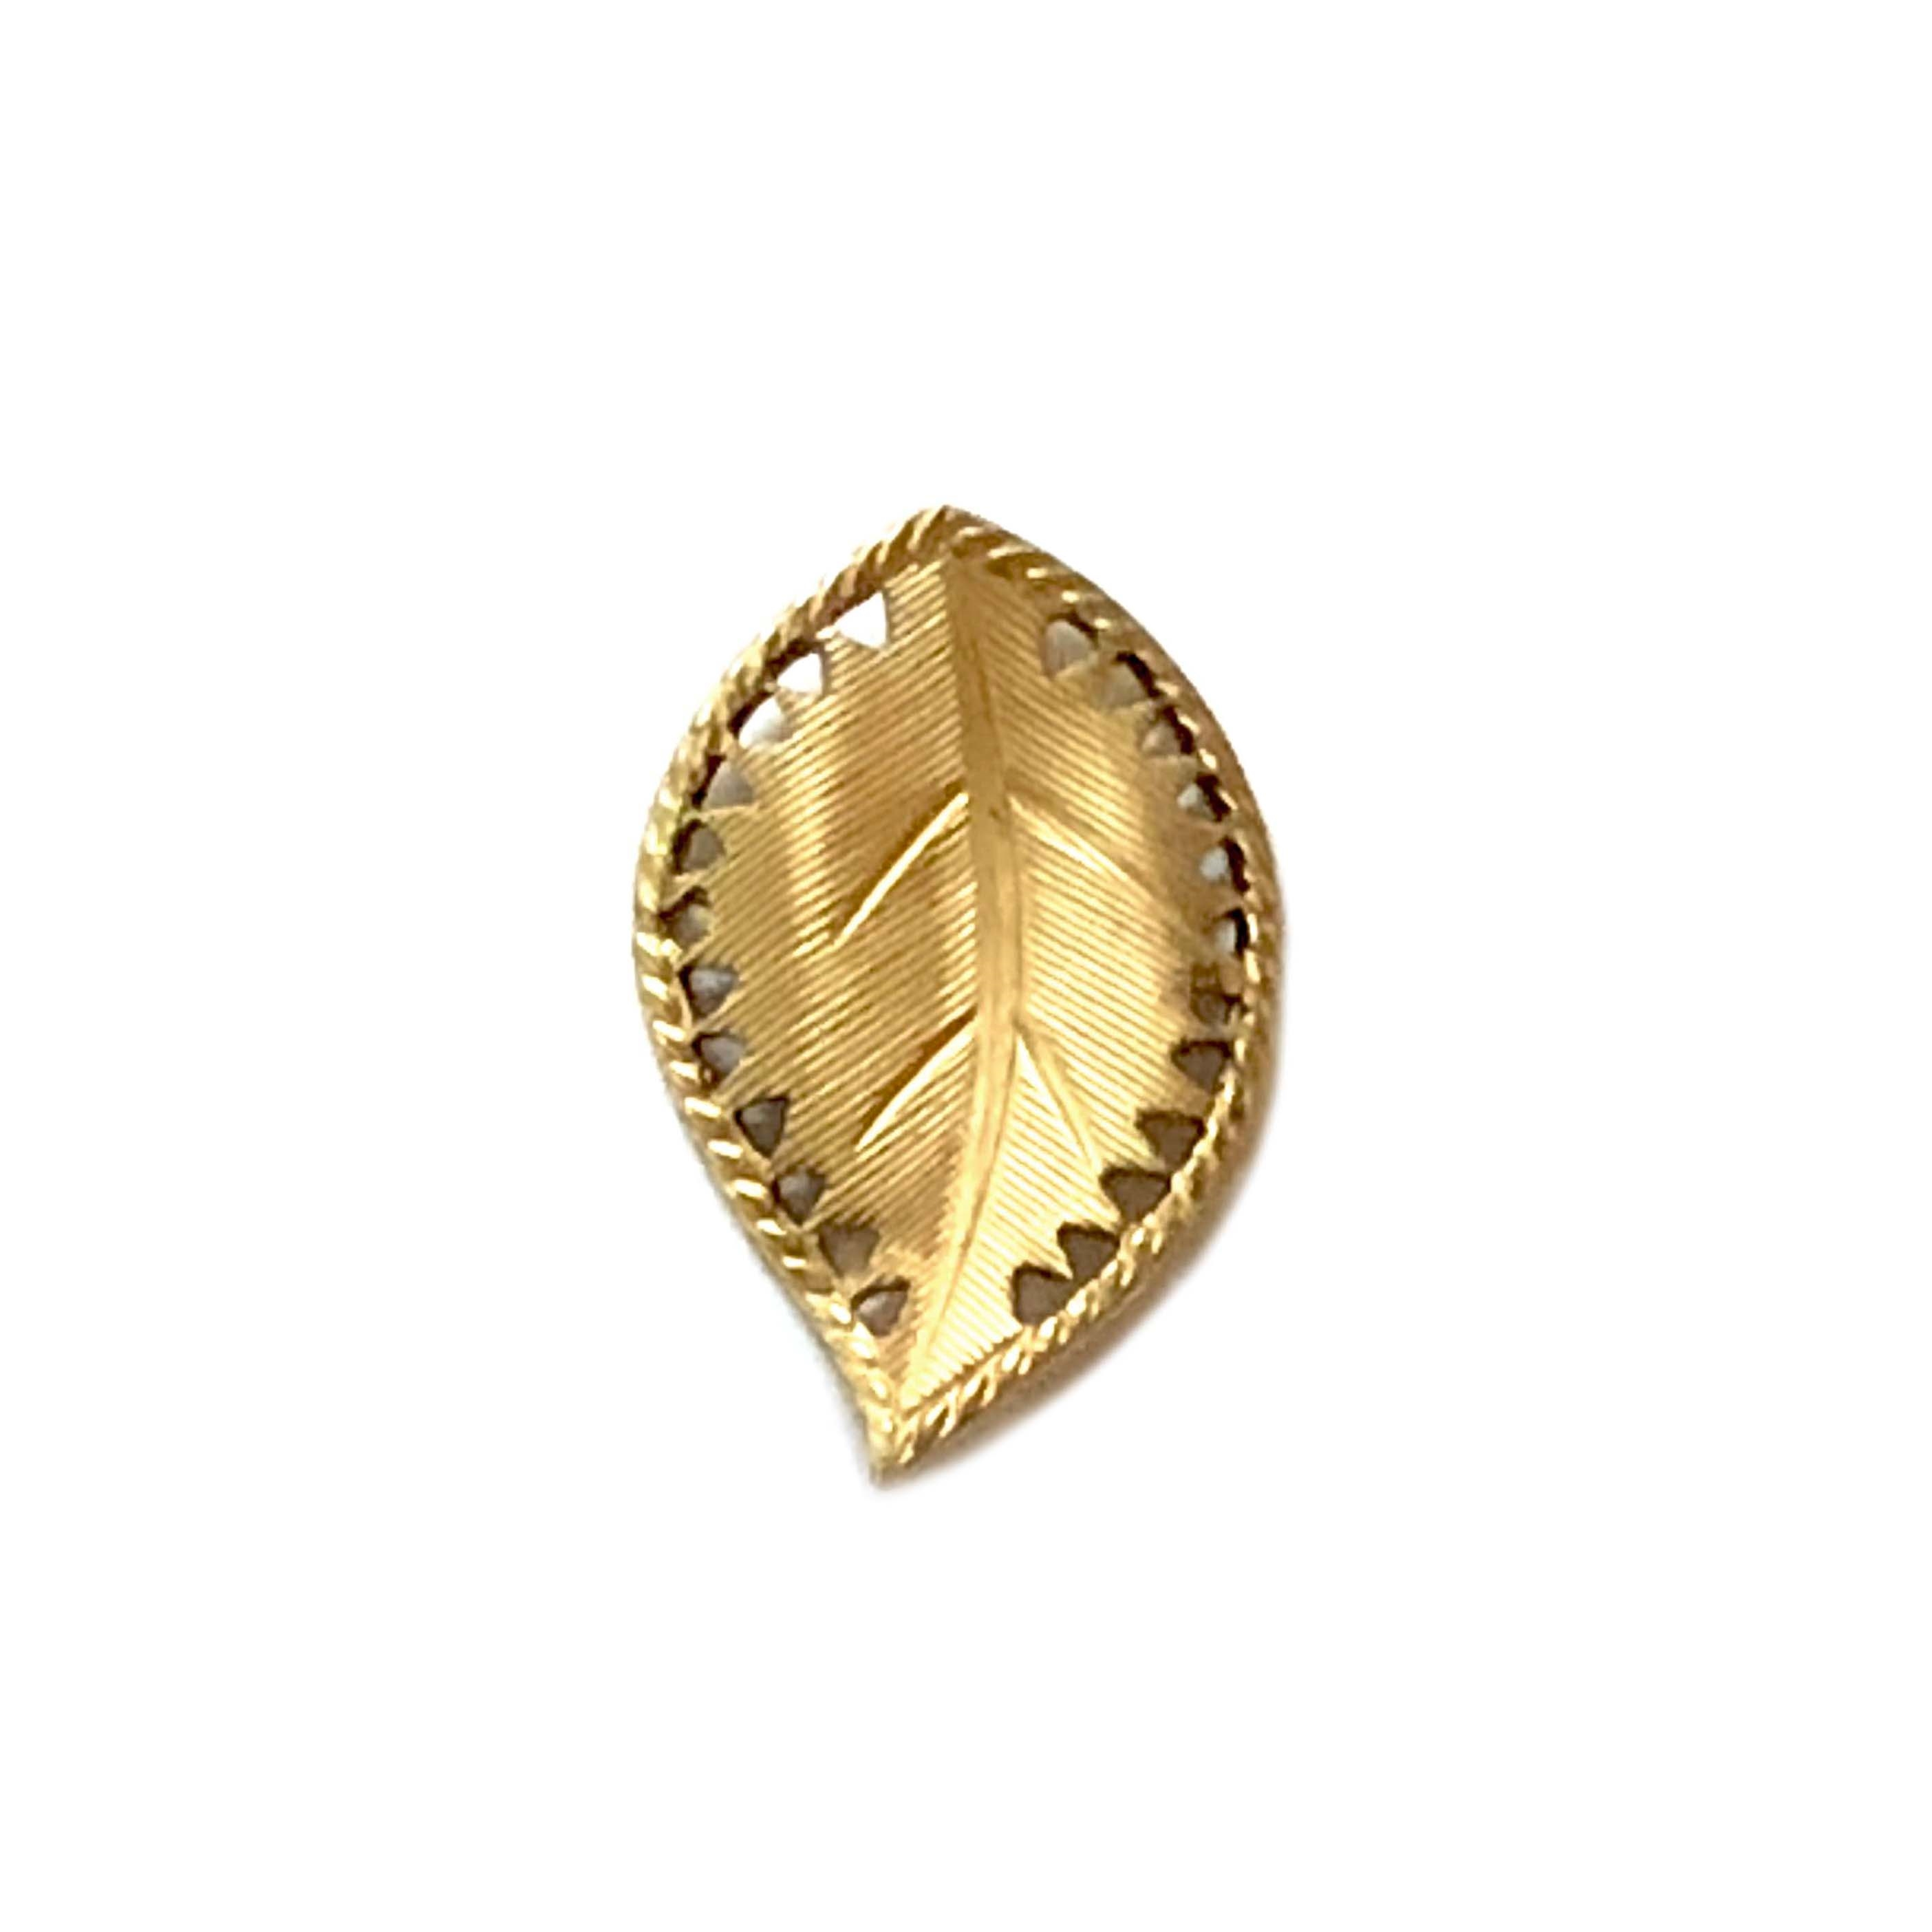 brass leaves, left facing beading leaf, jewelry supplies, 29mm, raw brass, vintage supplies, jewelry making, jewelry supplies, brass jewelry parts, US made, nickel free, B'sue Boutiques, antique brass, curved leaves, leaf, left facing leaf, 03294